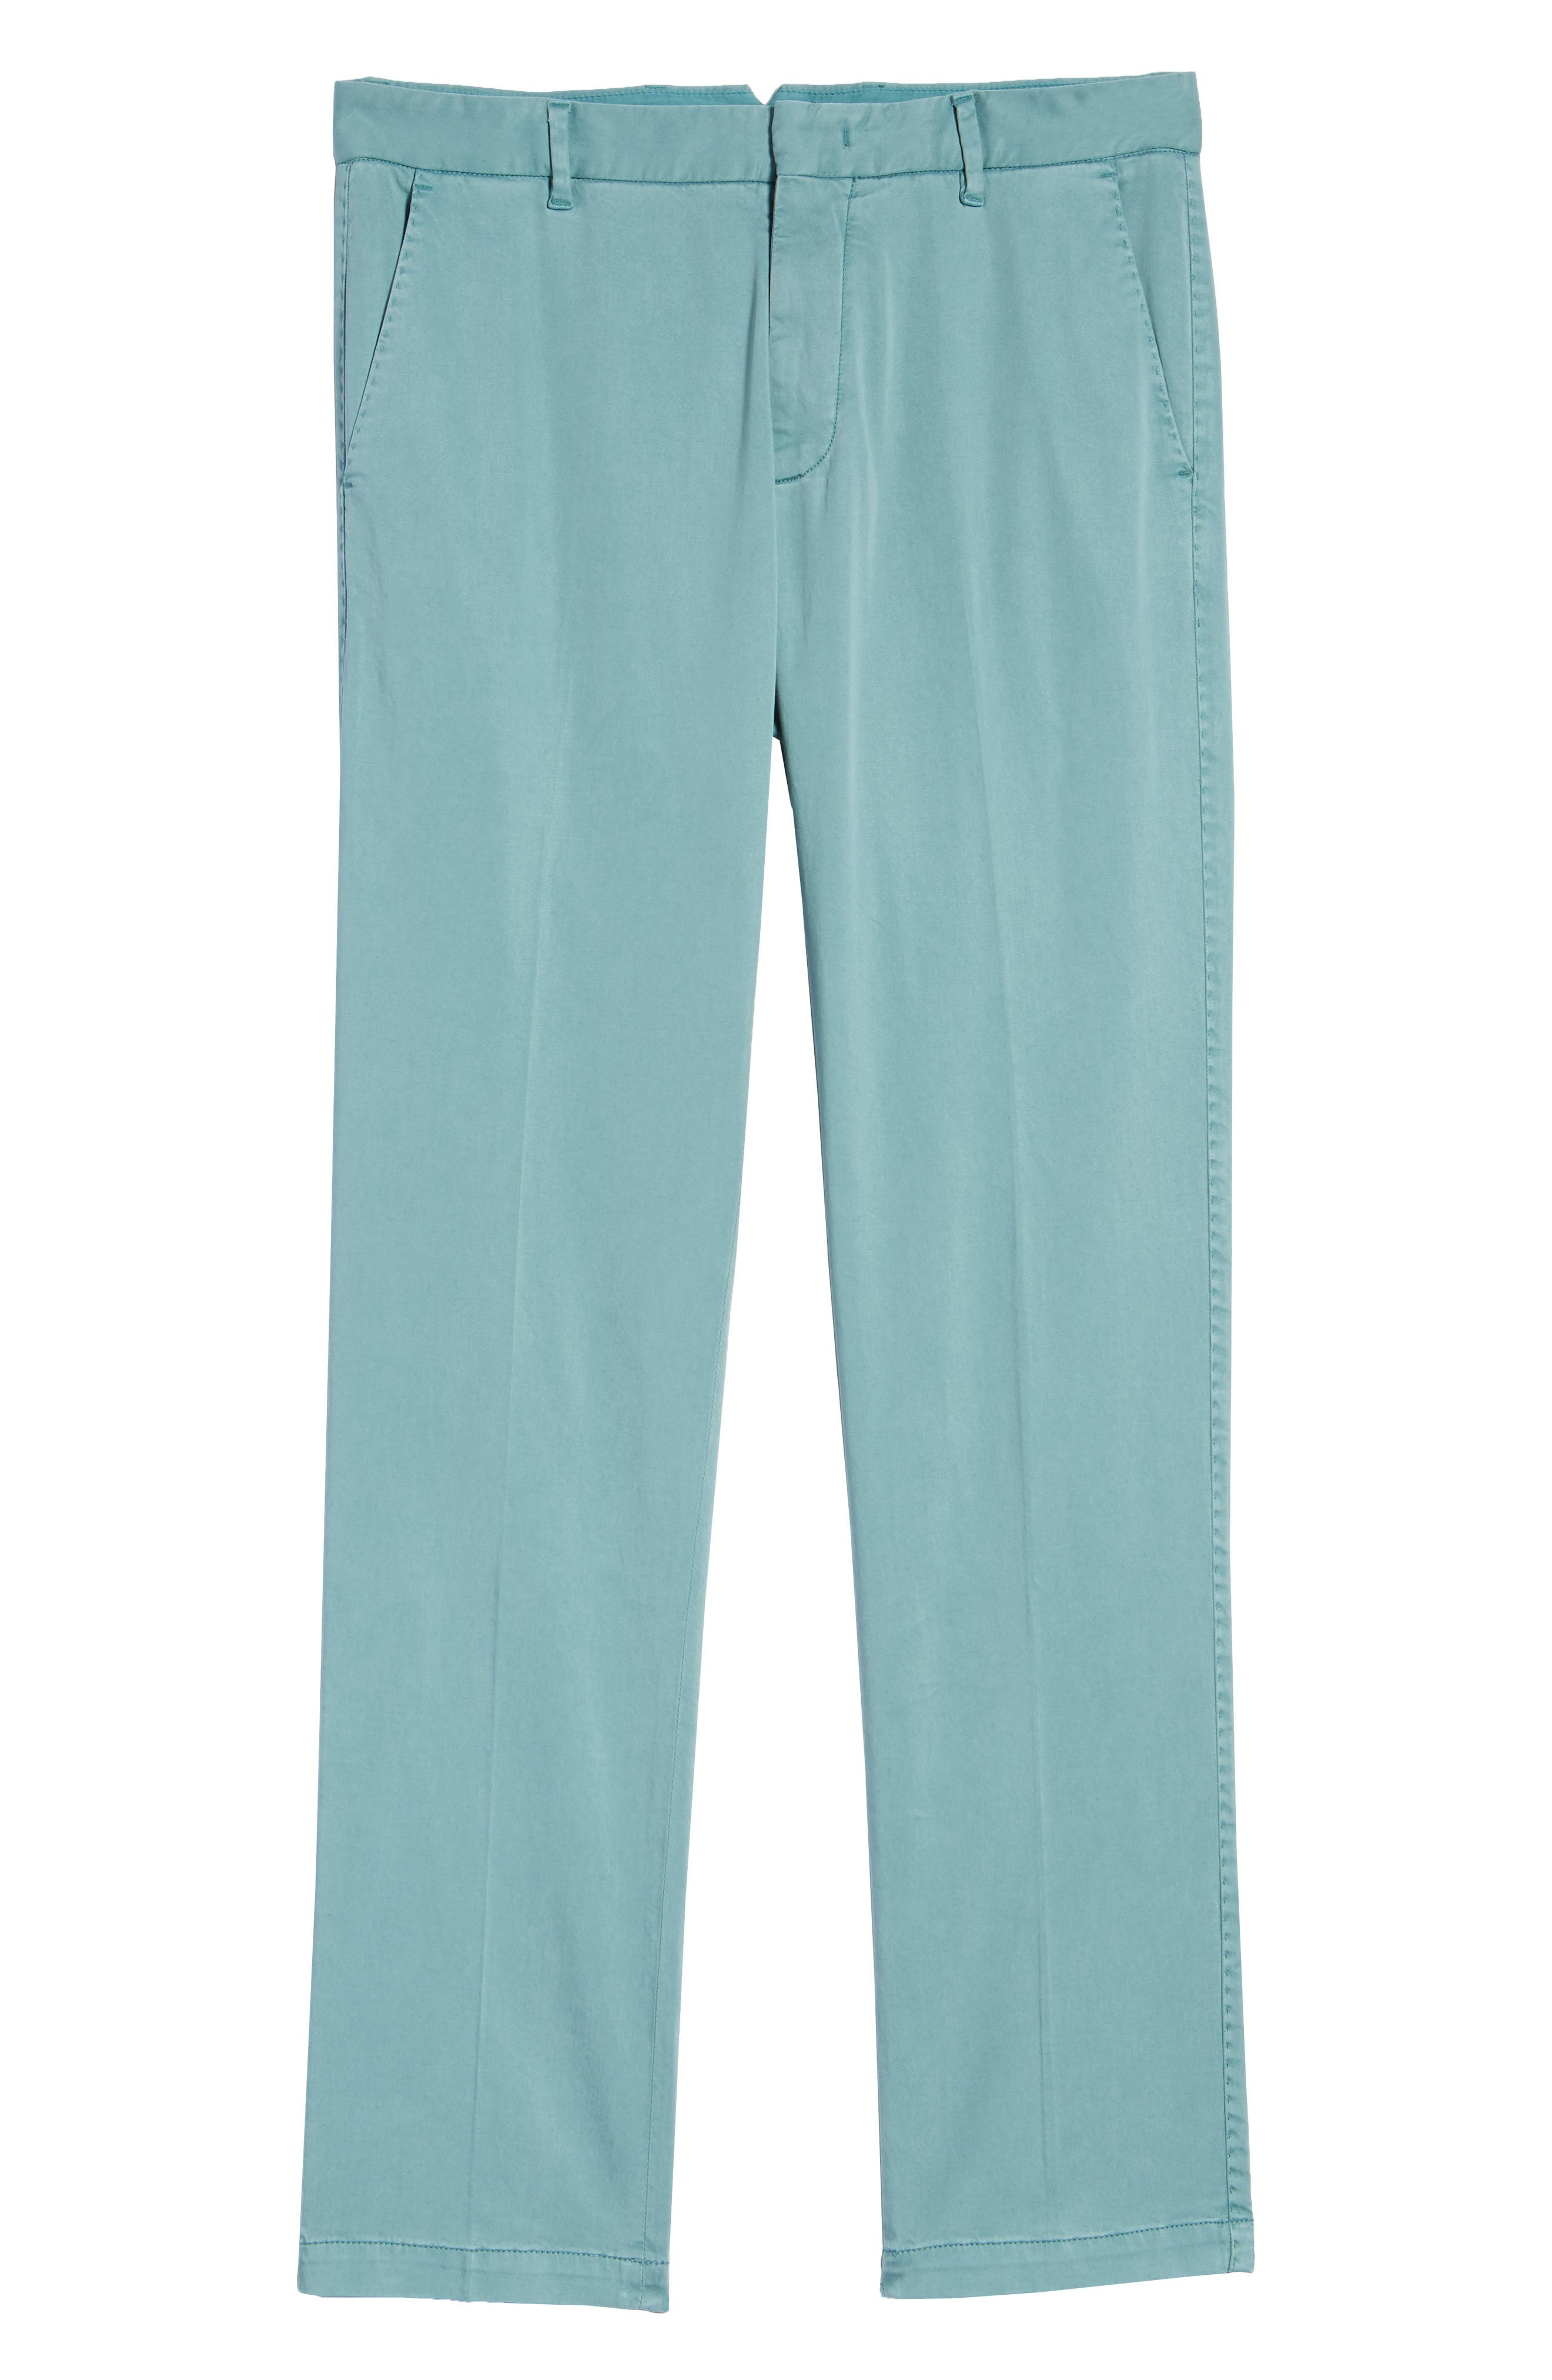 Aster Straight Fit Pants,                             Alternate thumbnail 6, color,                             TEAL